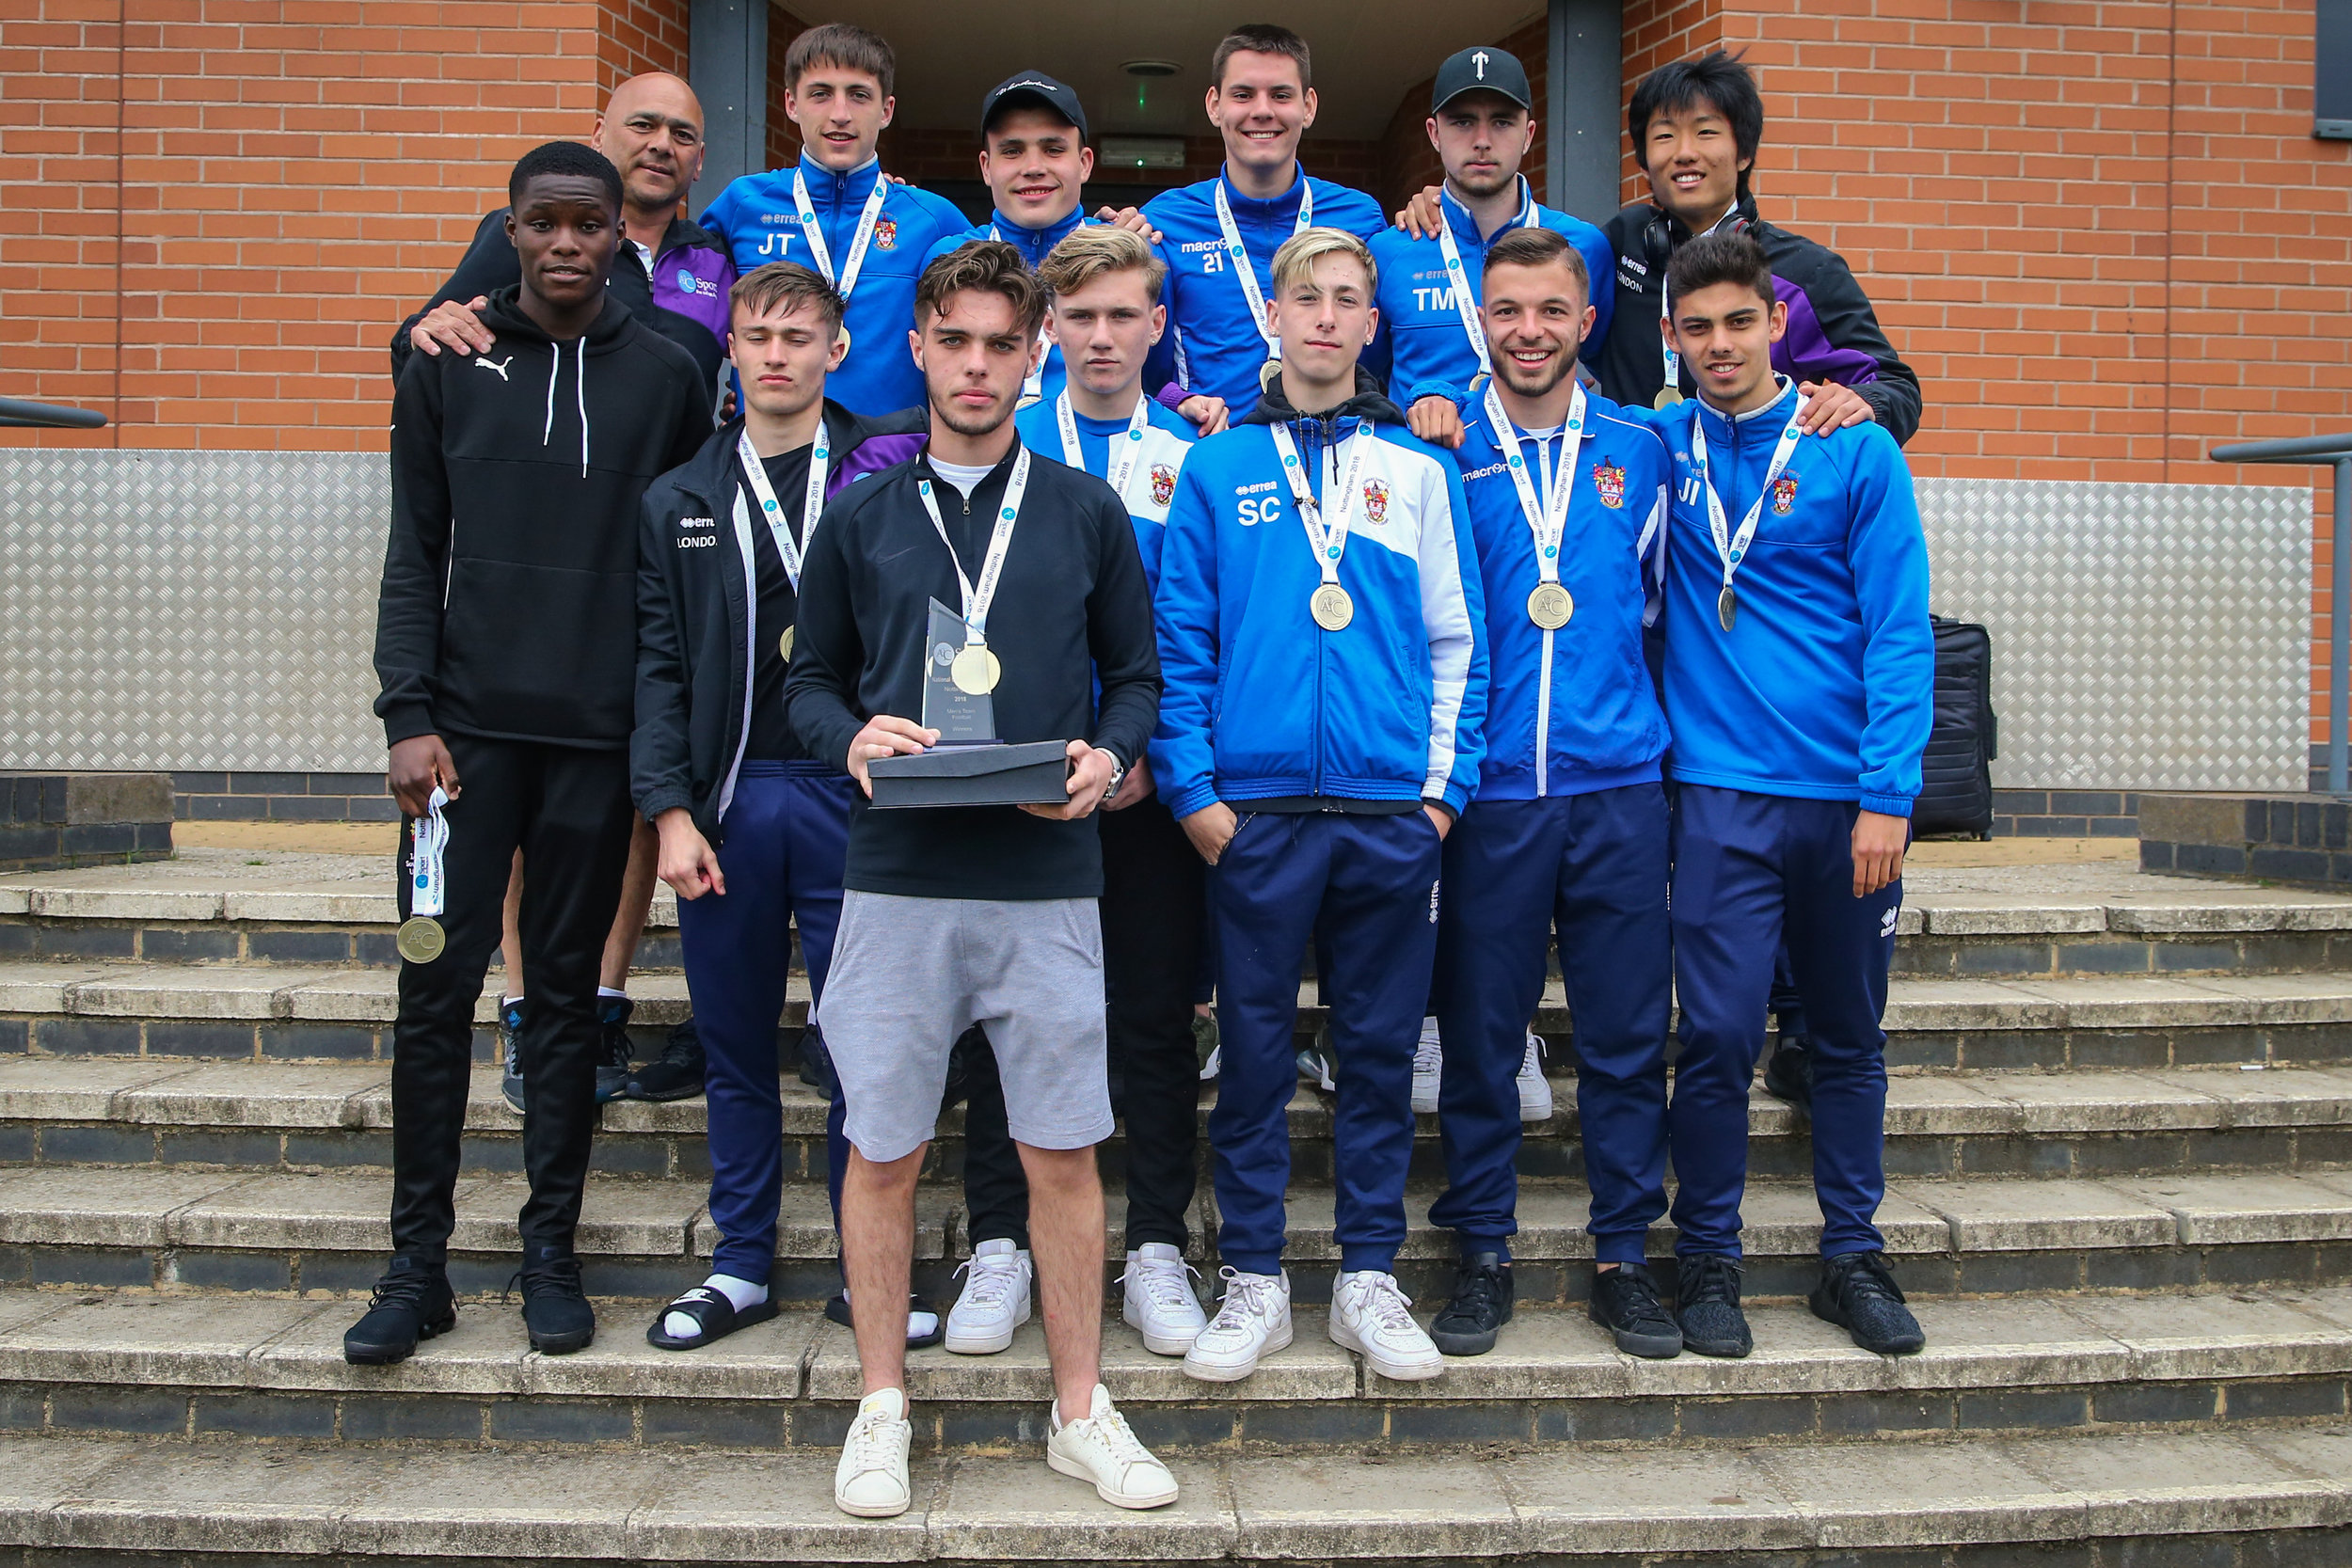 Kingston College - men's football winners at 2018 National Championships